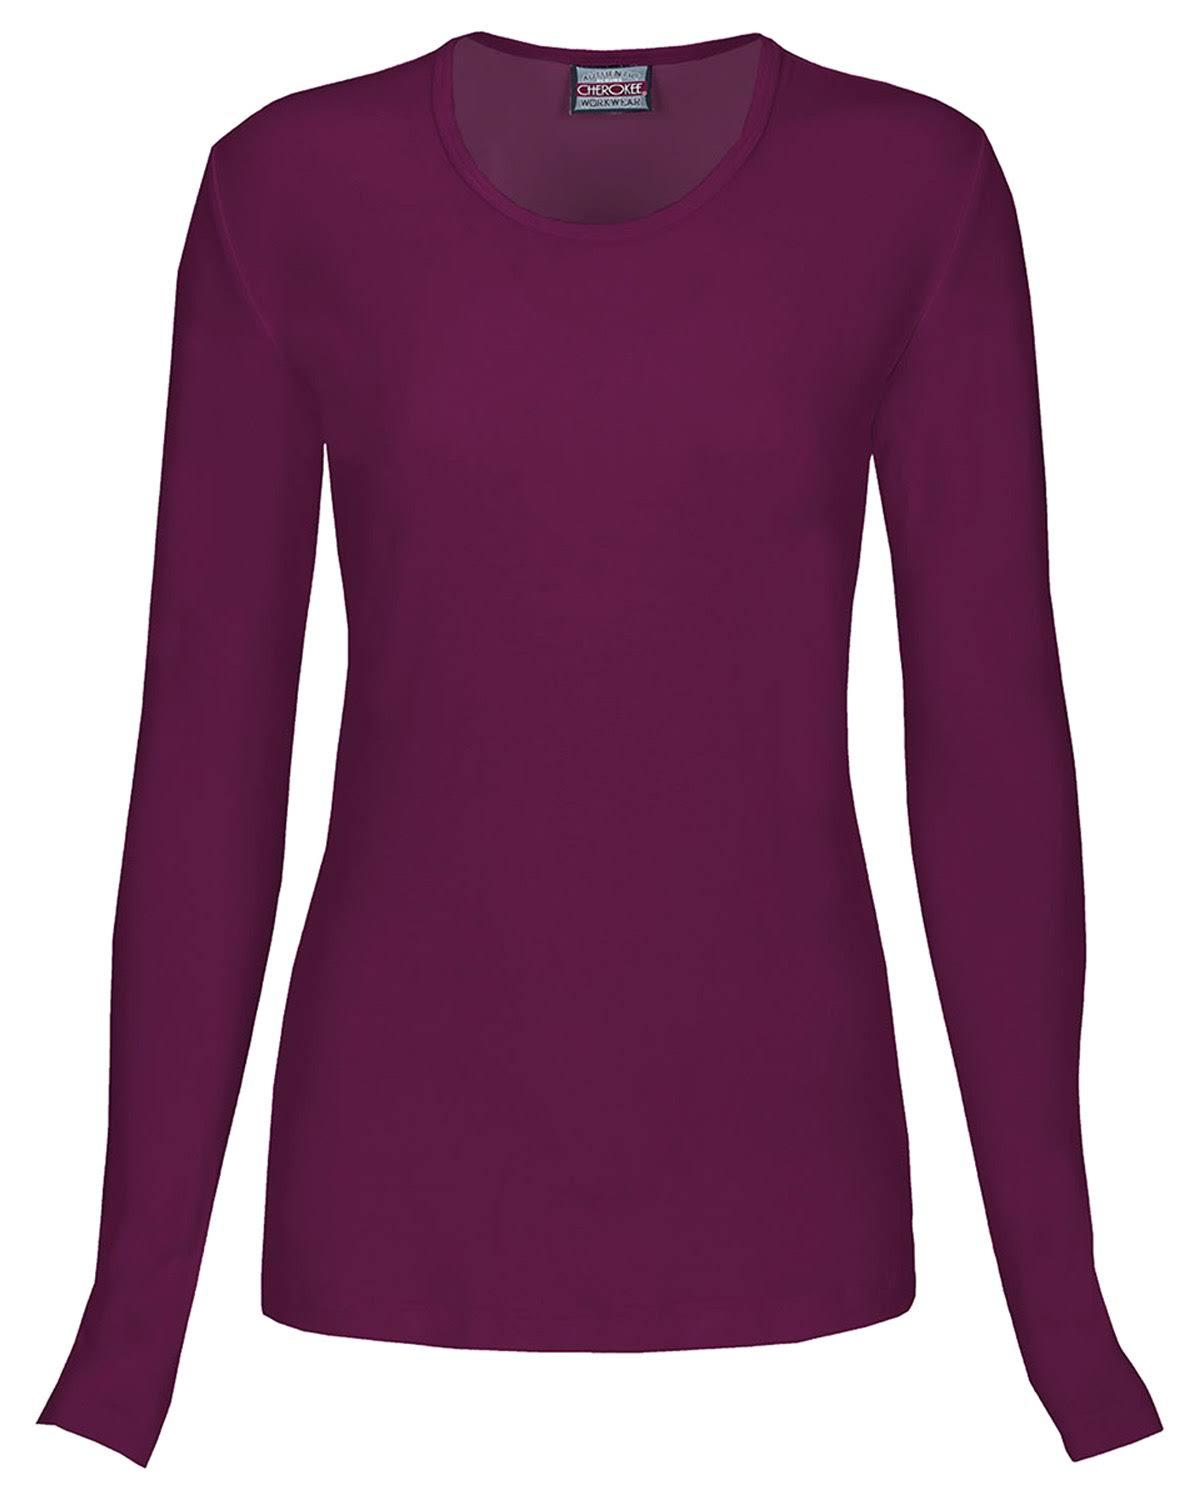 Cherokee Women's Long Sleeve Knit Tee - Wine, Small